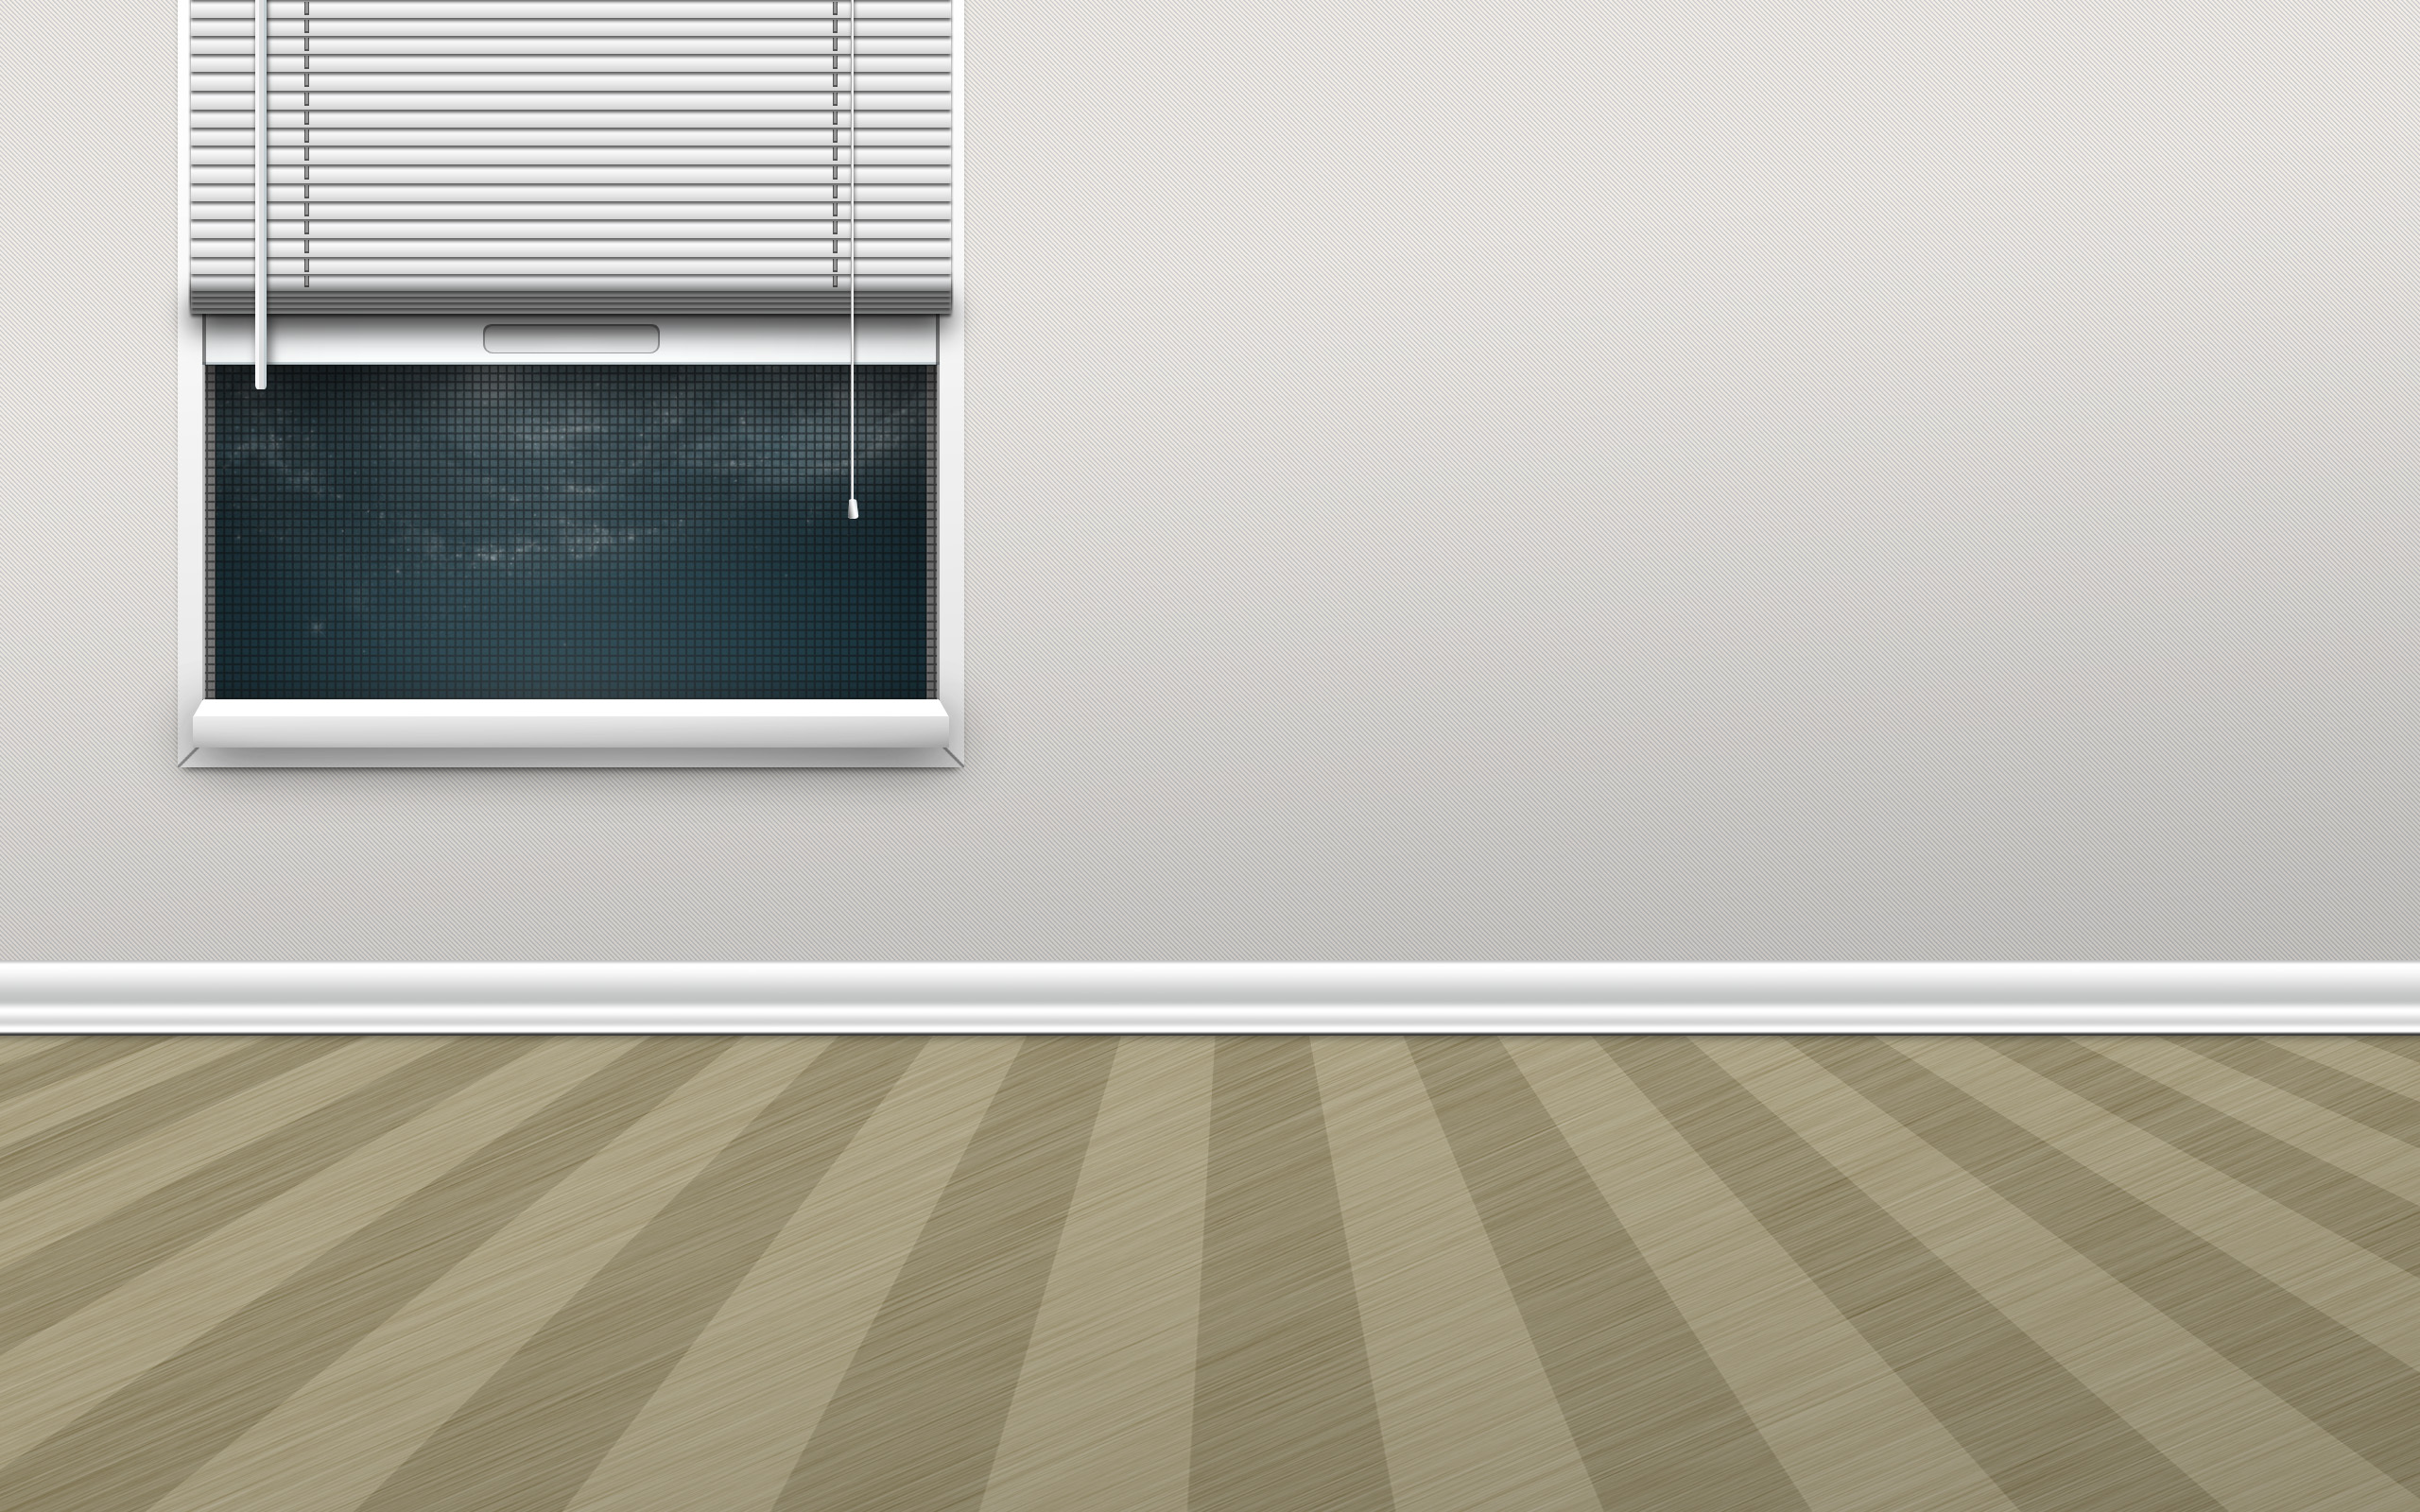 Room Wall Picture Music Wall Room Window Rendering Wallpaper